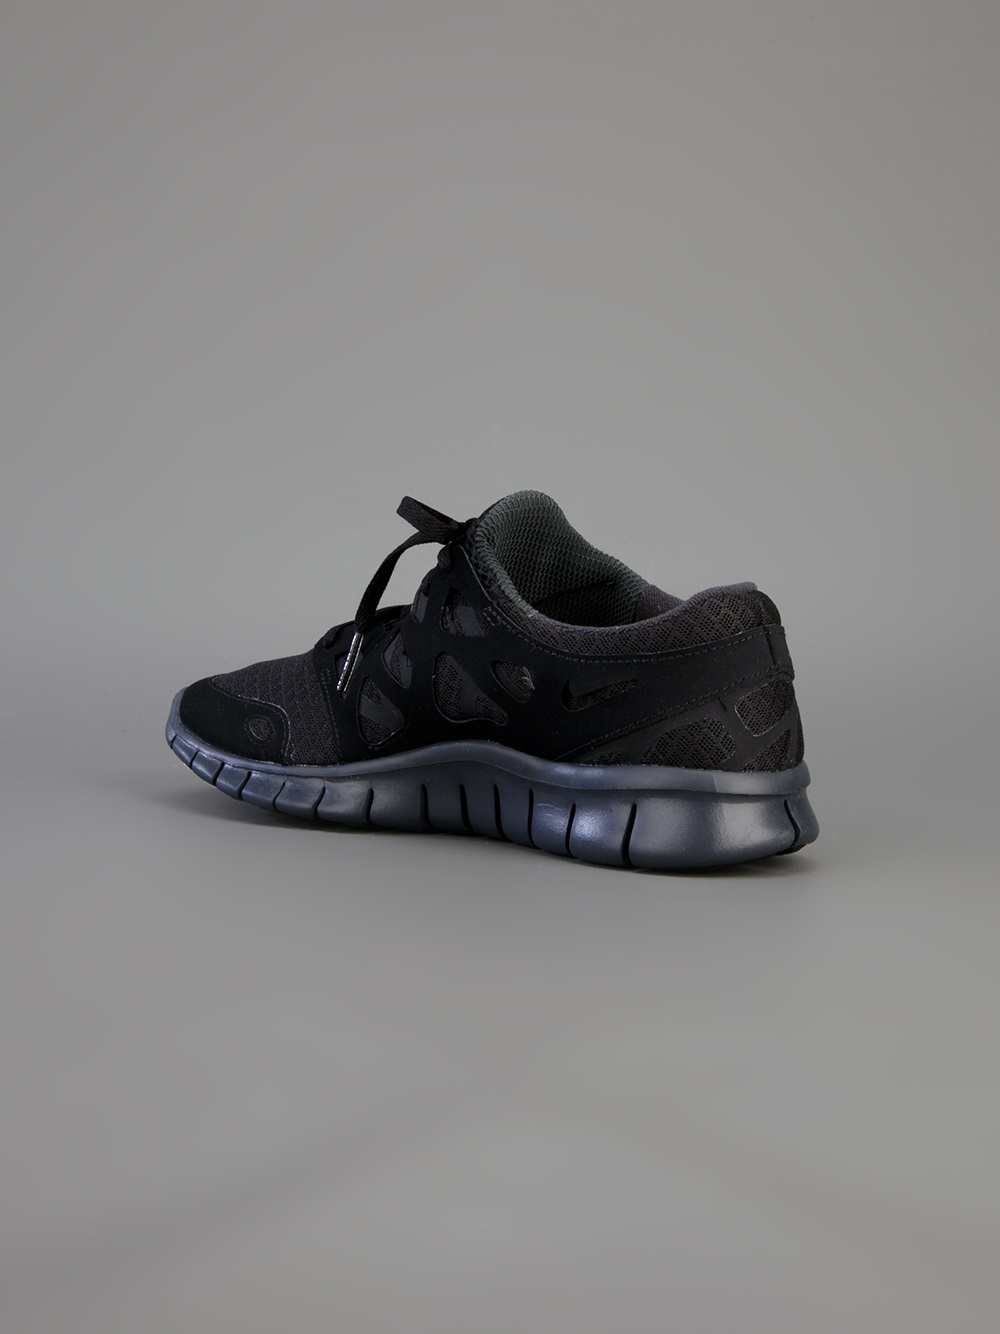 lyst nike free run 2 nsw trainer in black for men. Black Bedroom Furniture Sets. Home Design Ideas